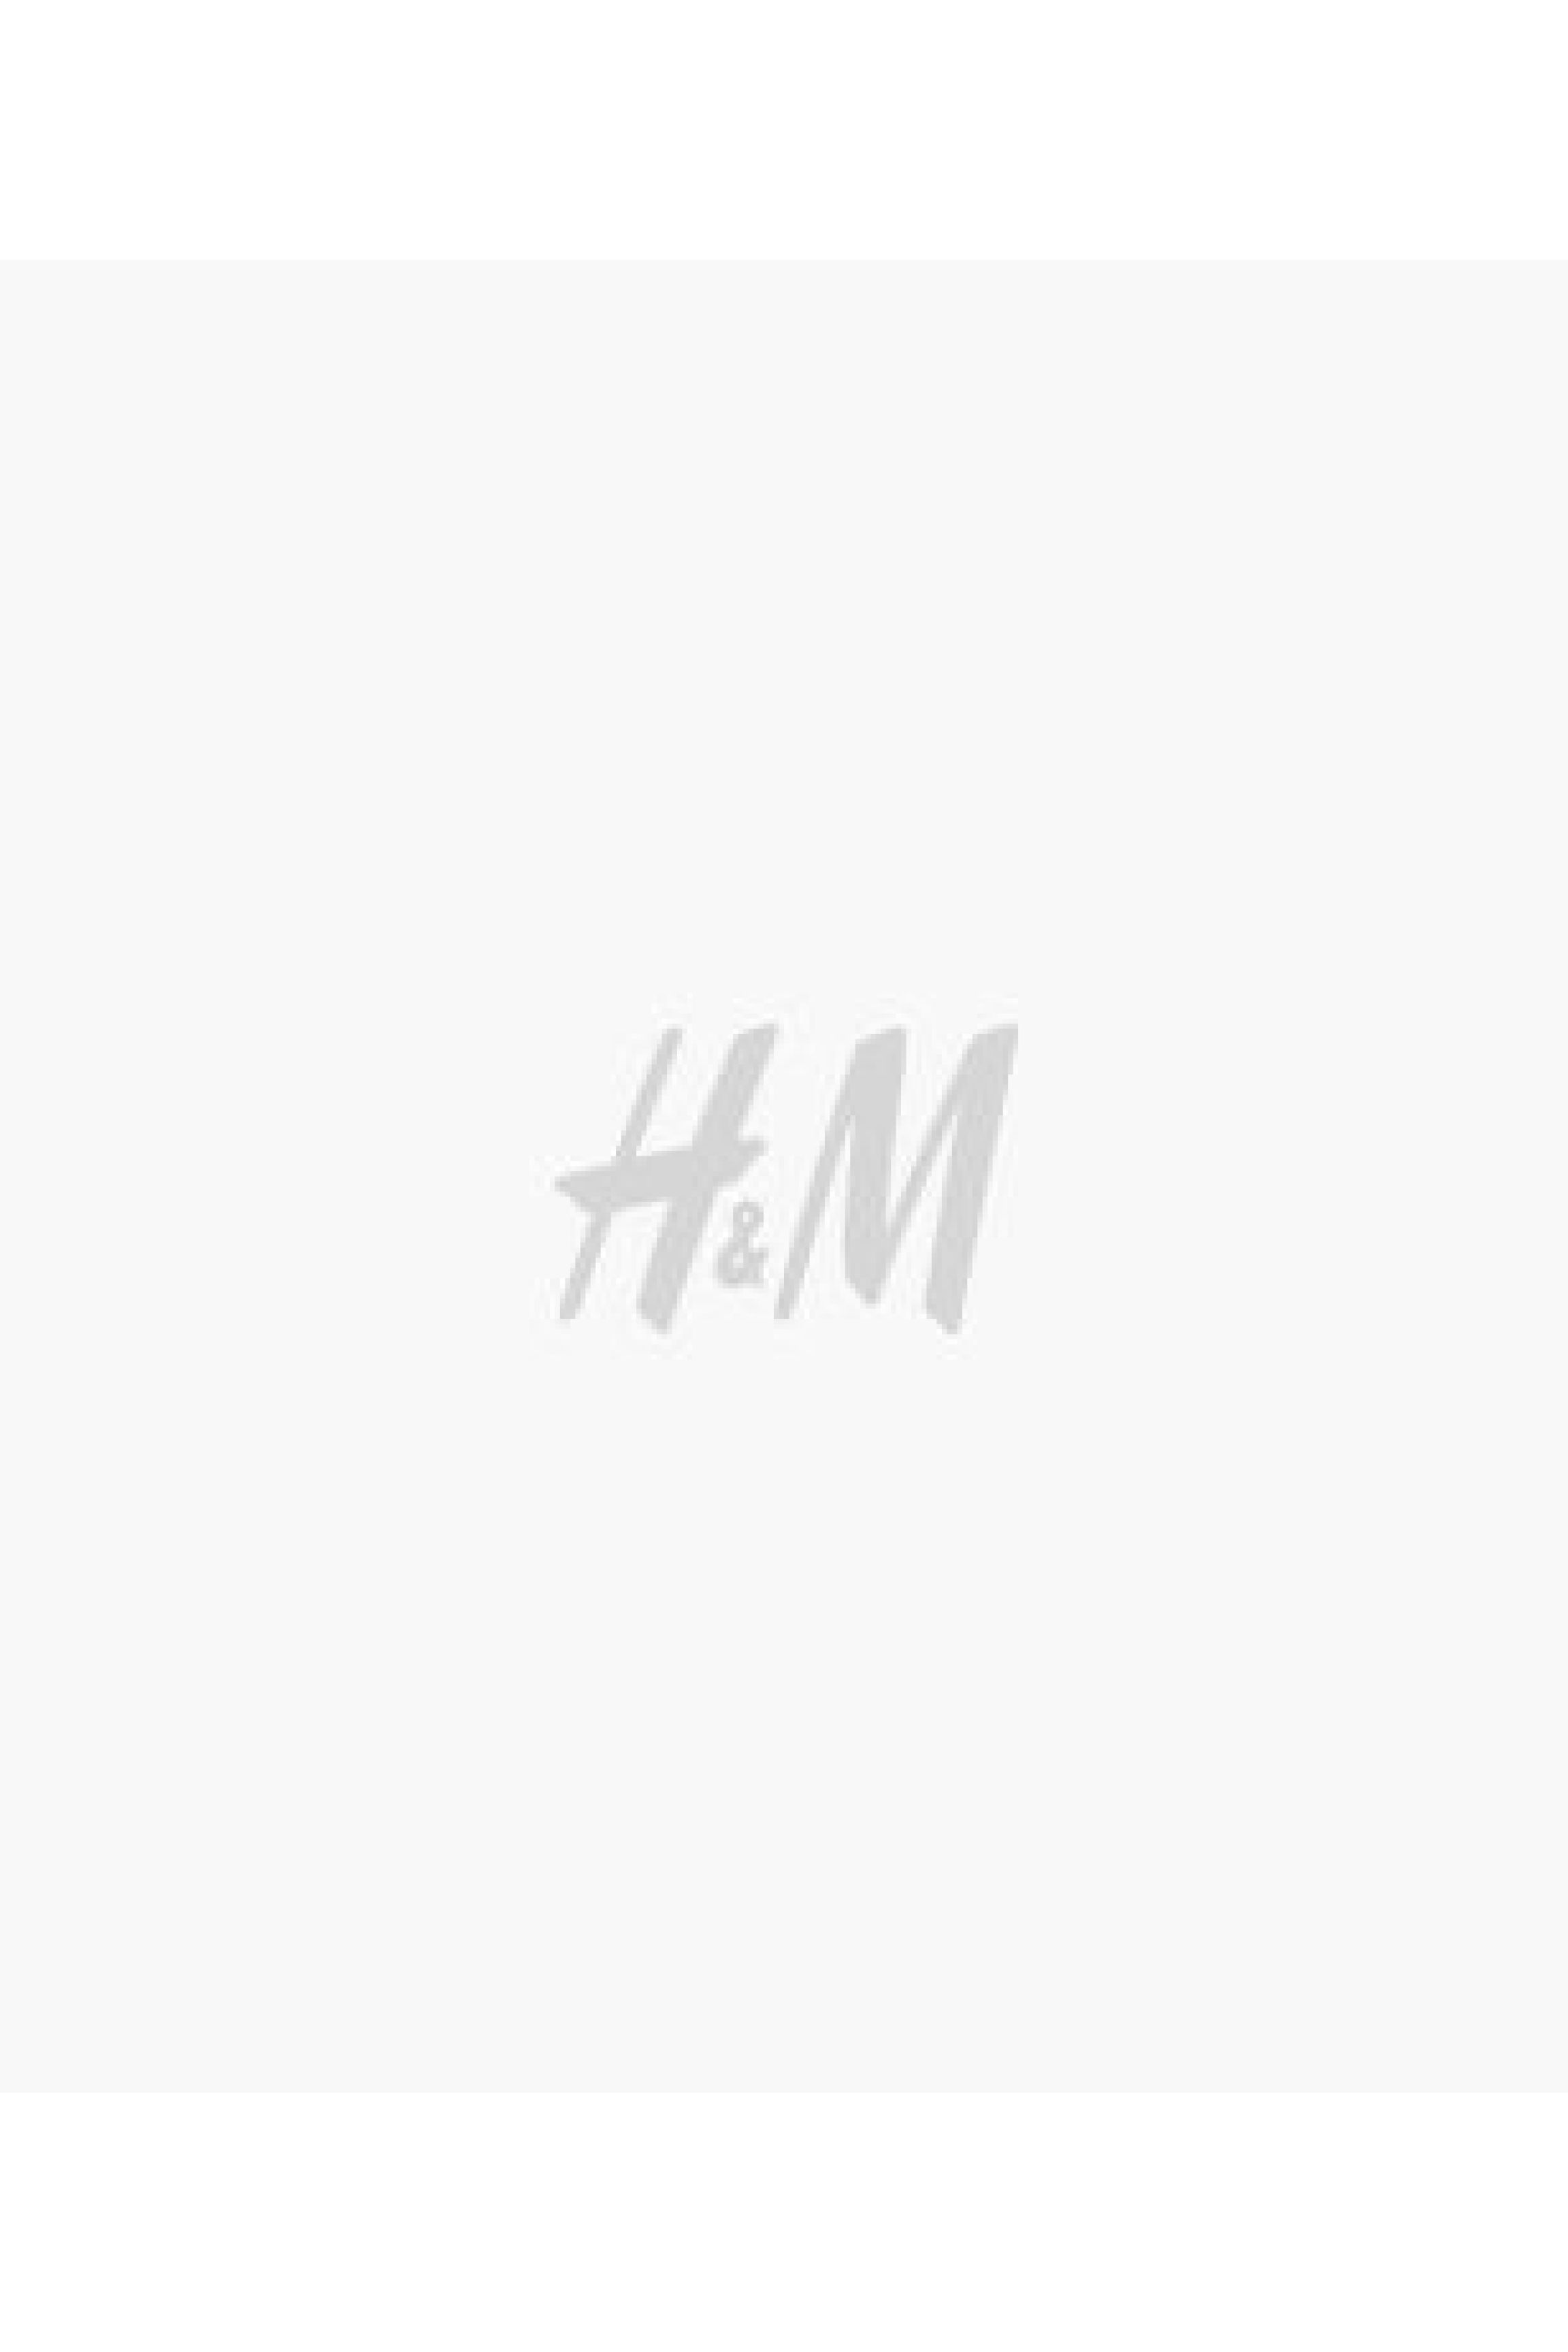 Feather-filled inner cushion